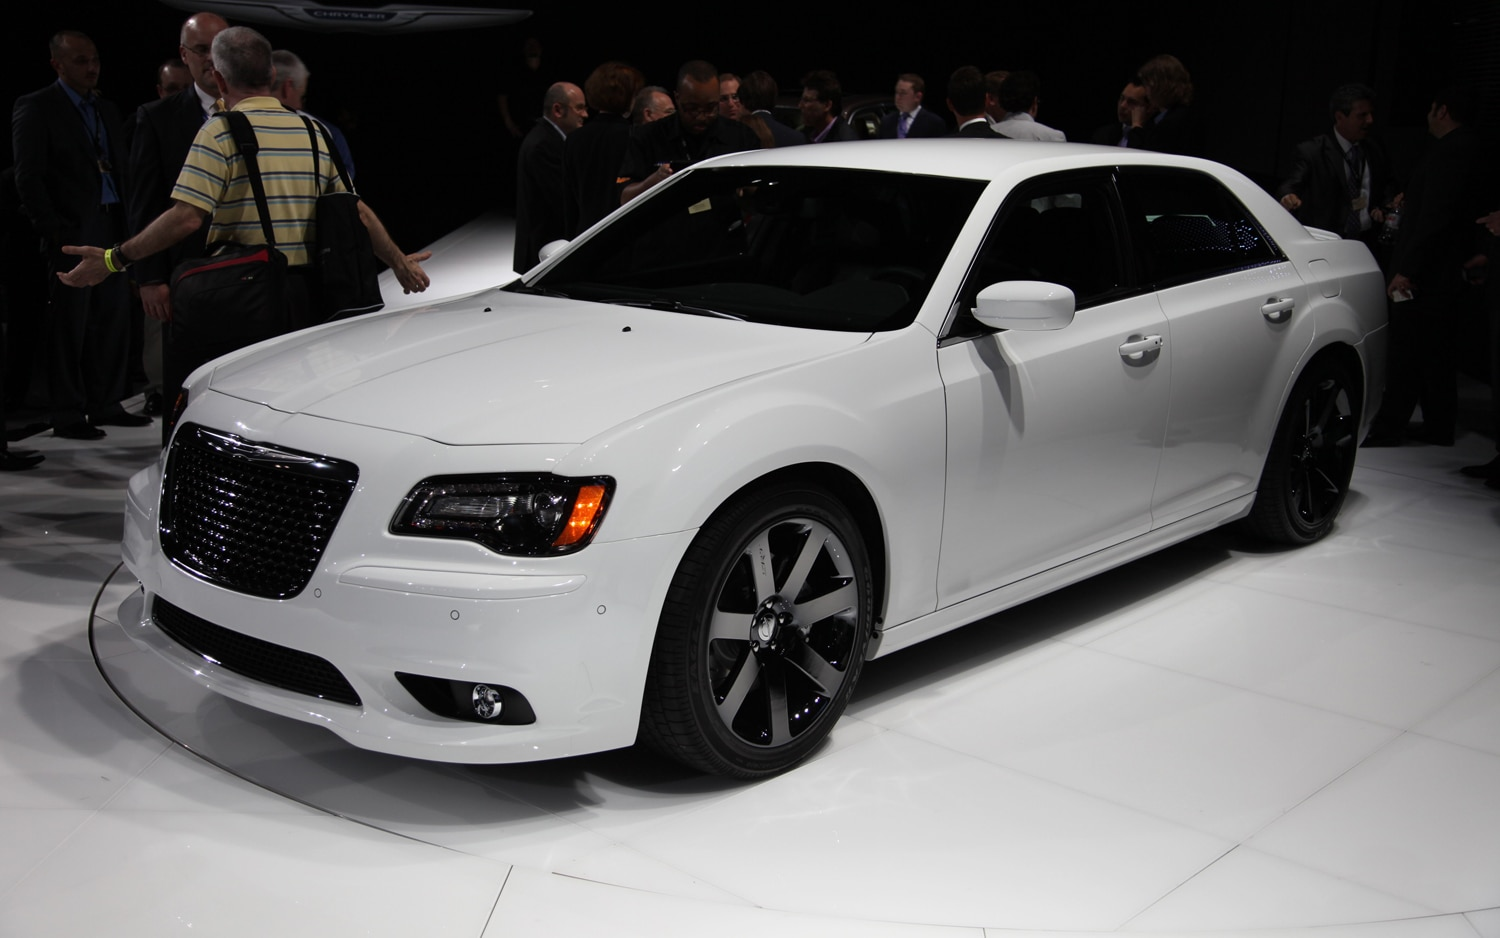 2012 Chrysler 300 SRT8 - First Look - Automobile Magazine